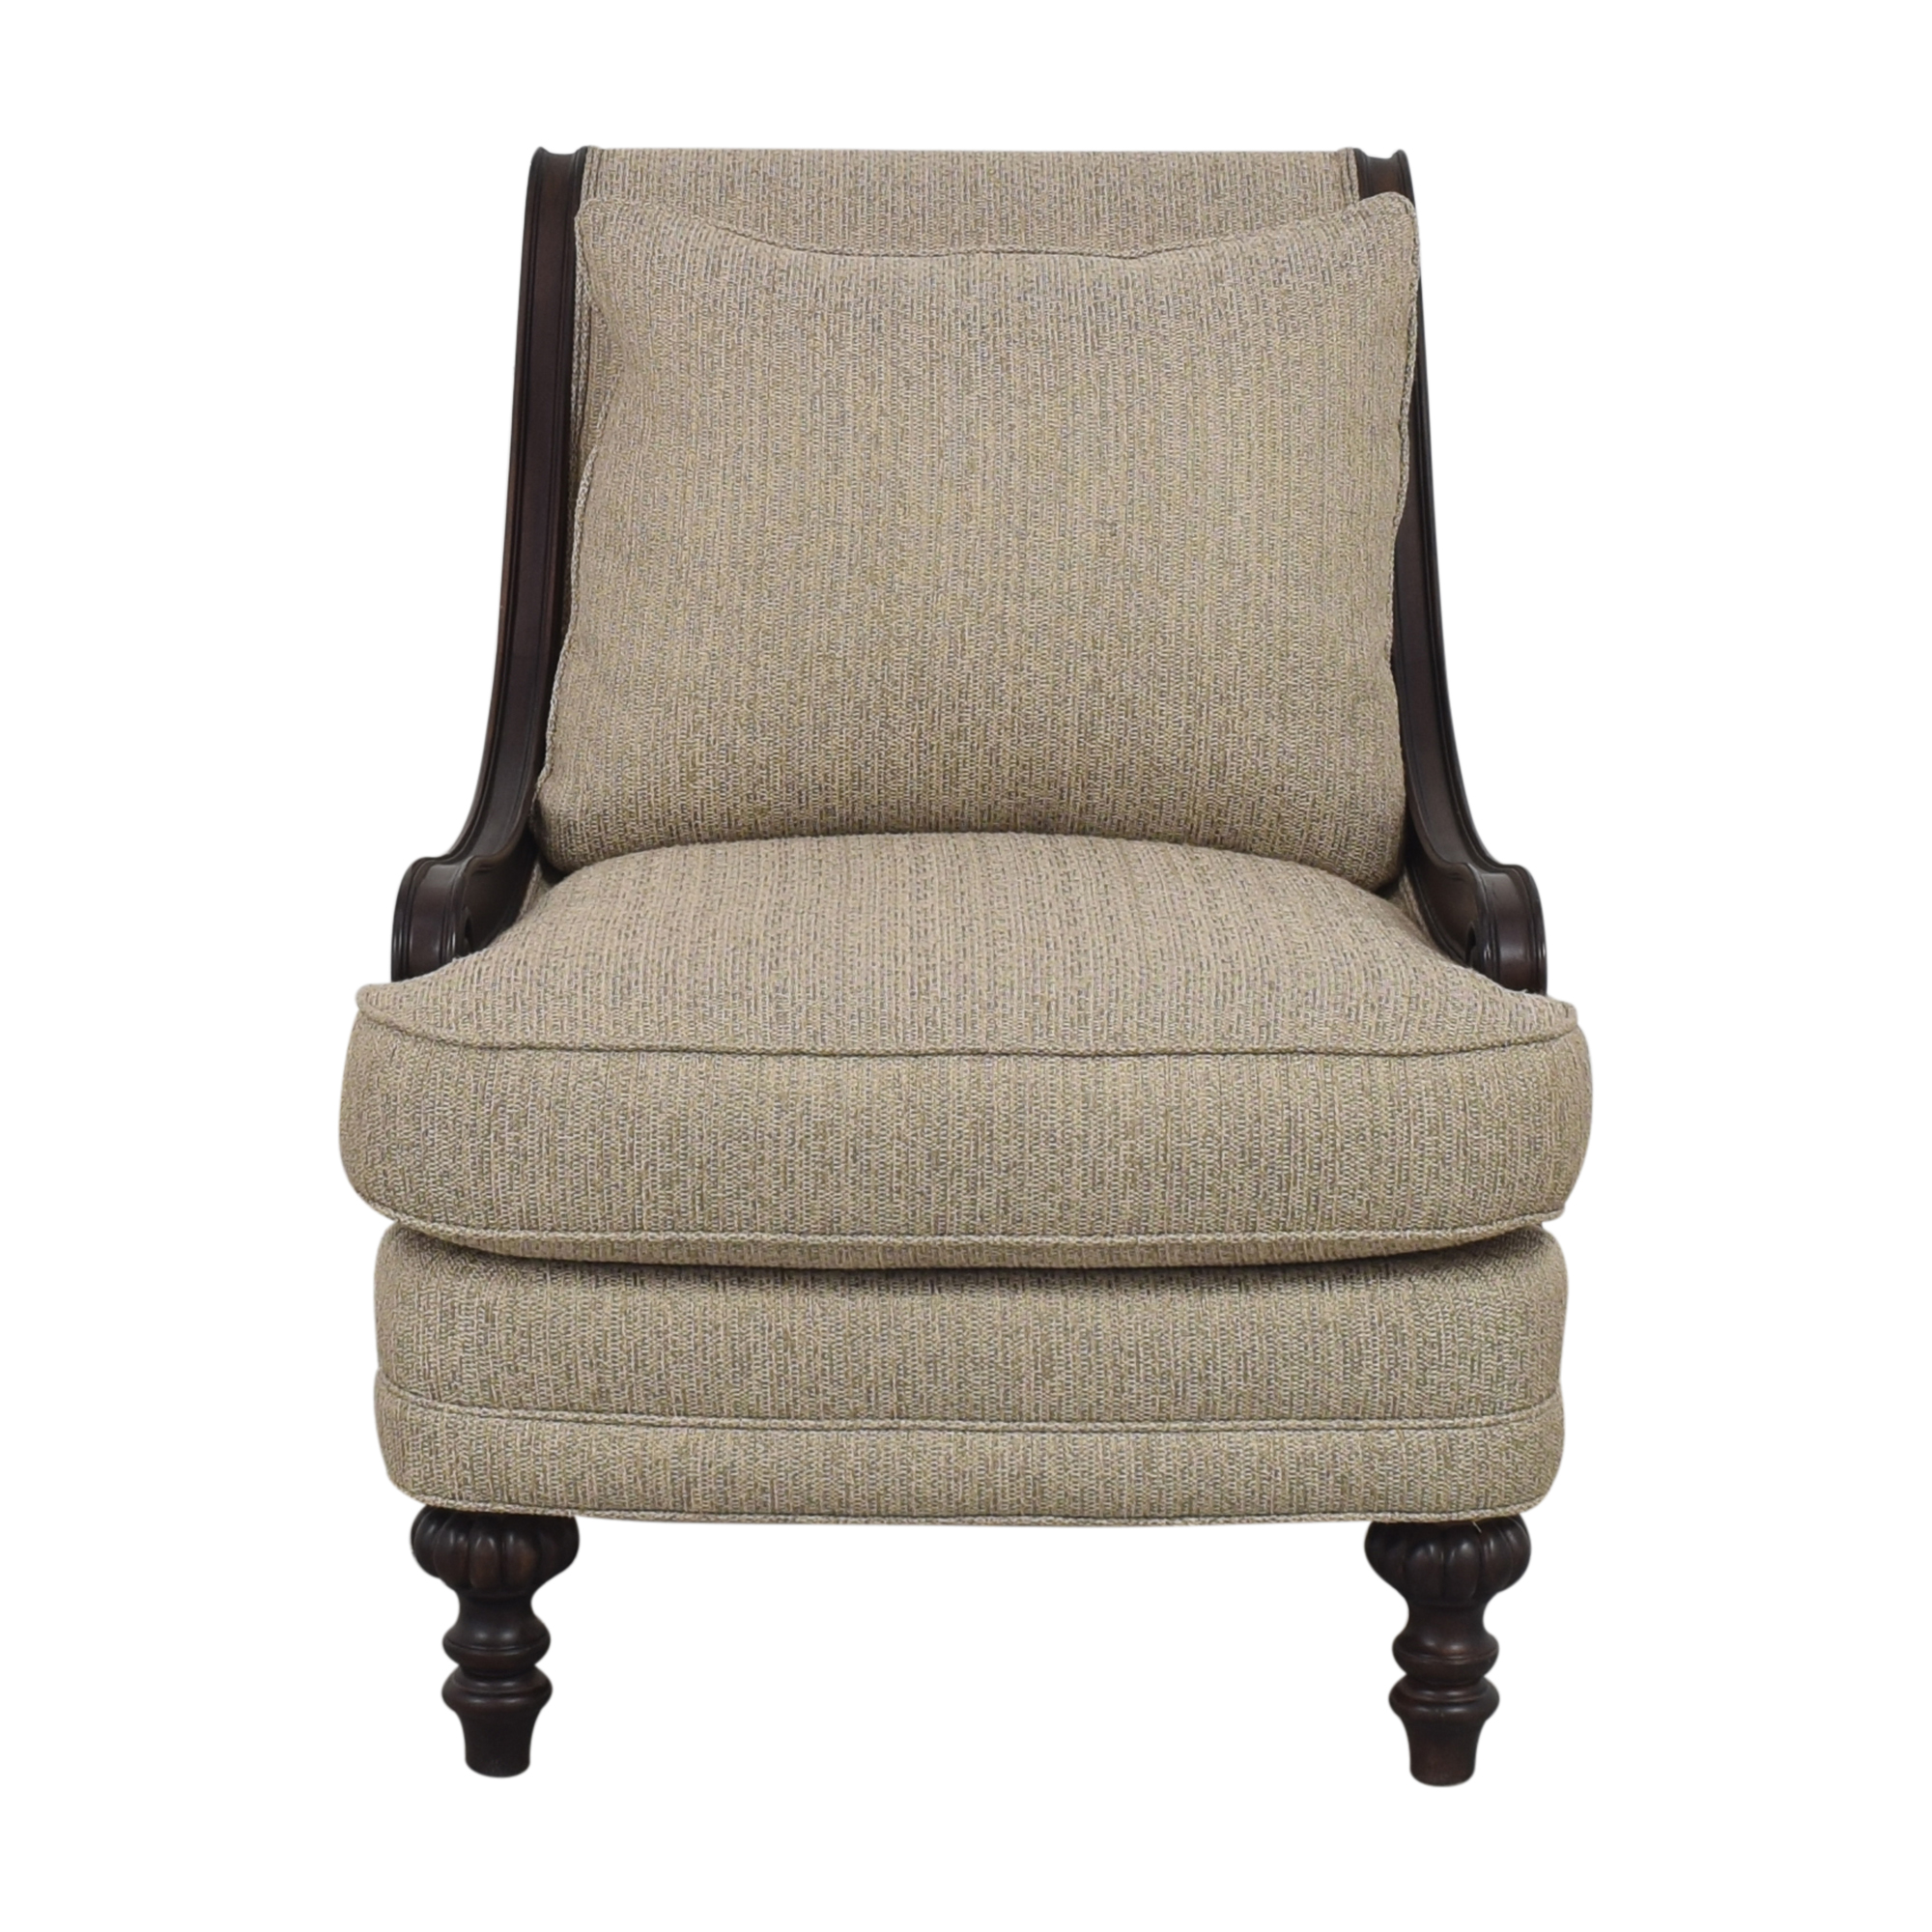 buy Drexel Heritage Basilia Chair Drexel Heritage Accent Chairs